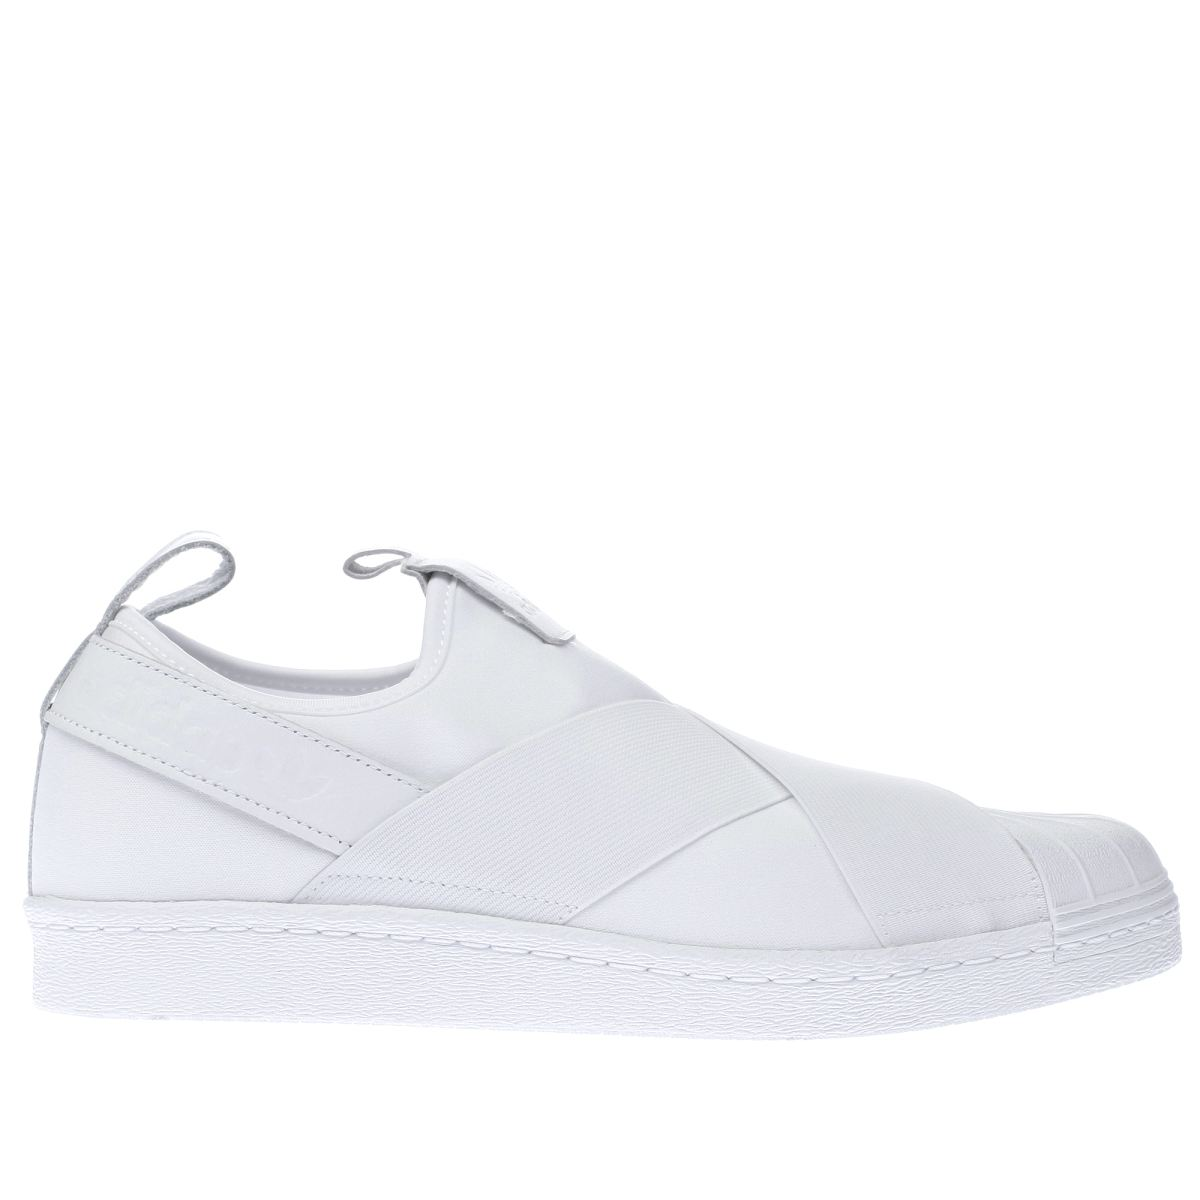 adidas white superstar slip-on trainers